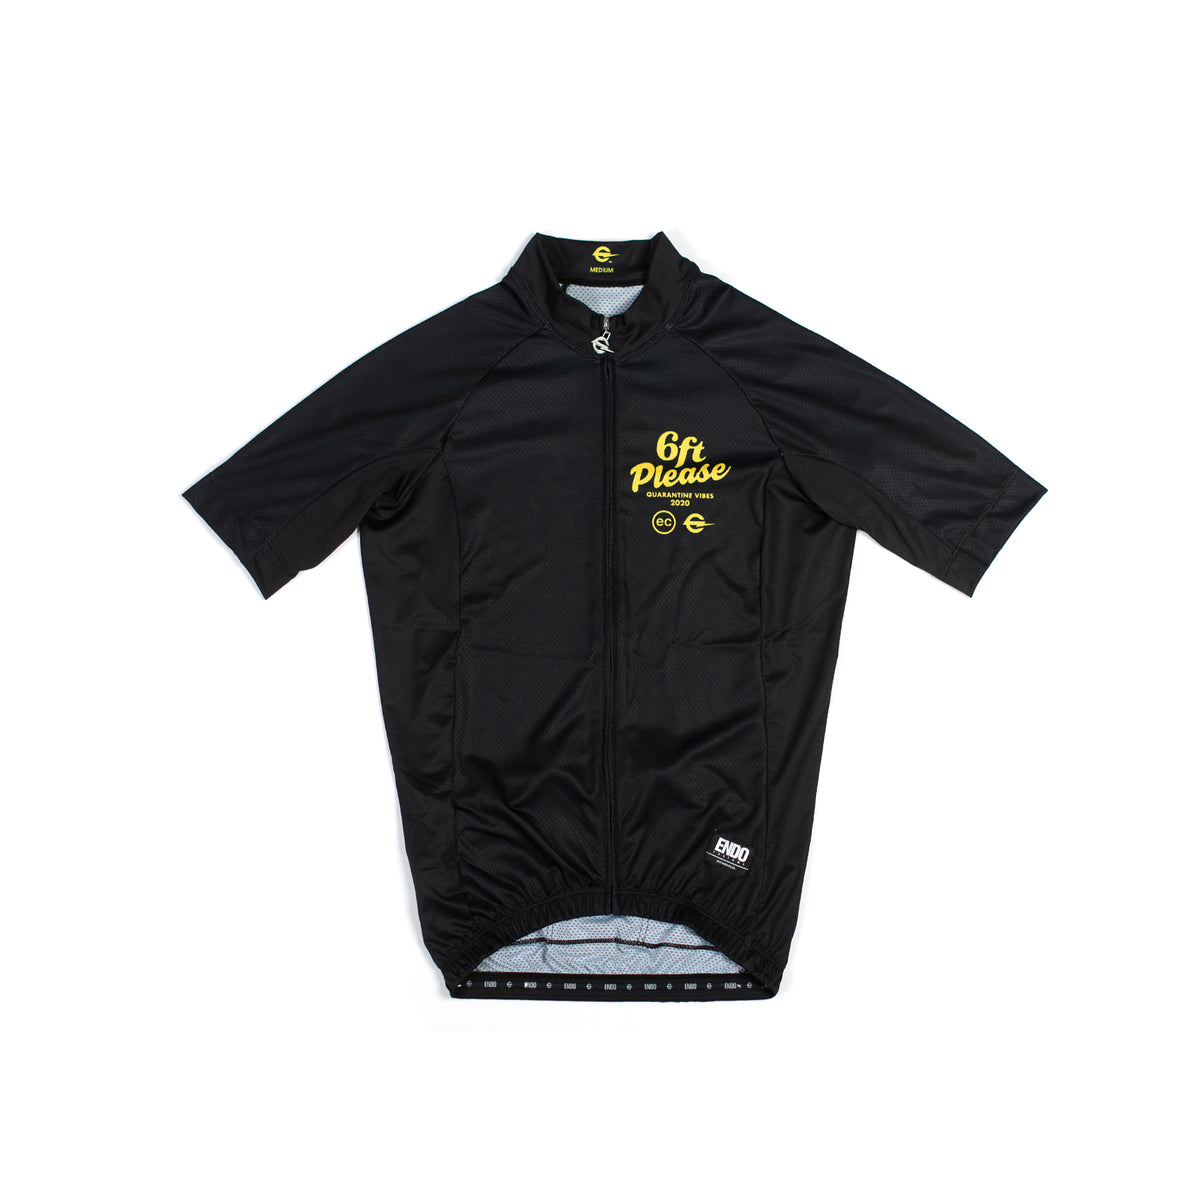 6FT PLEASE - ALAMEDA JERSEY - BLACK